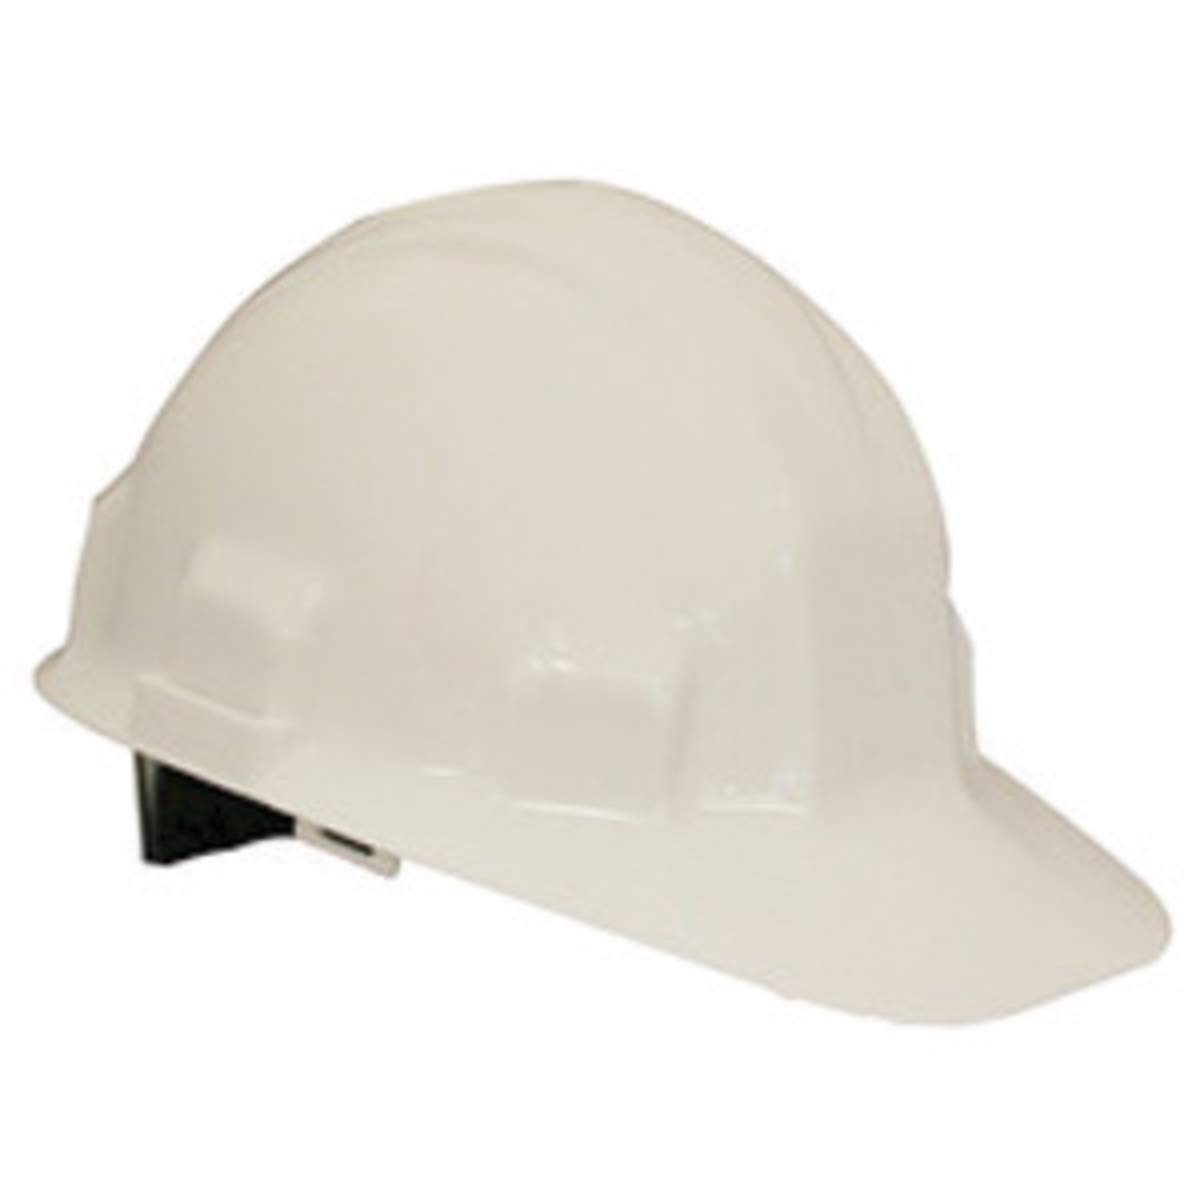 4b780e8e6b7 Get Quotations · Kimberly-Clark Professional White Jackson Safety Sentry  III HDPE Cap Style Slotted Hard Hat With